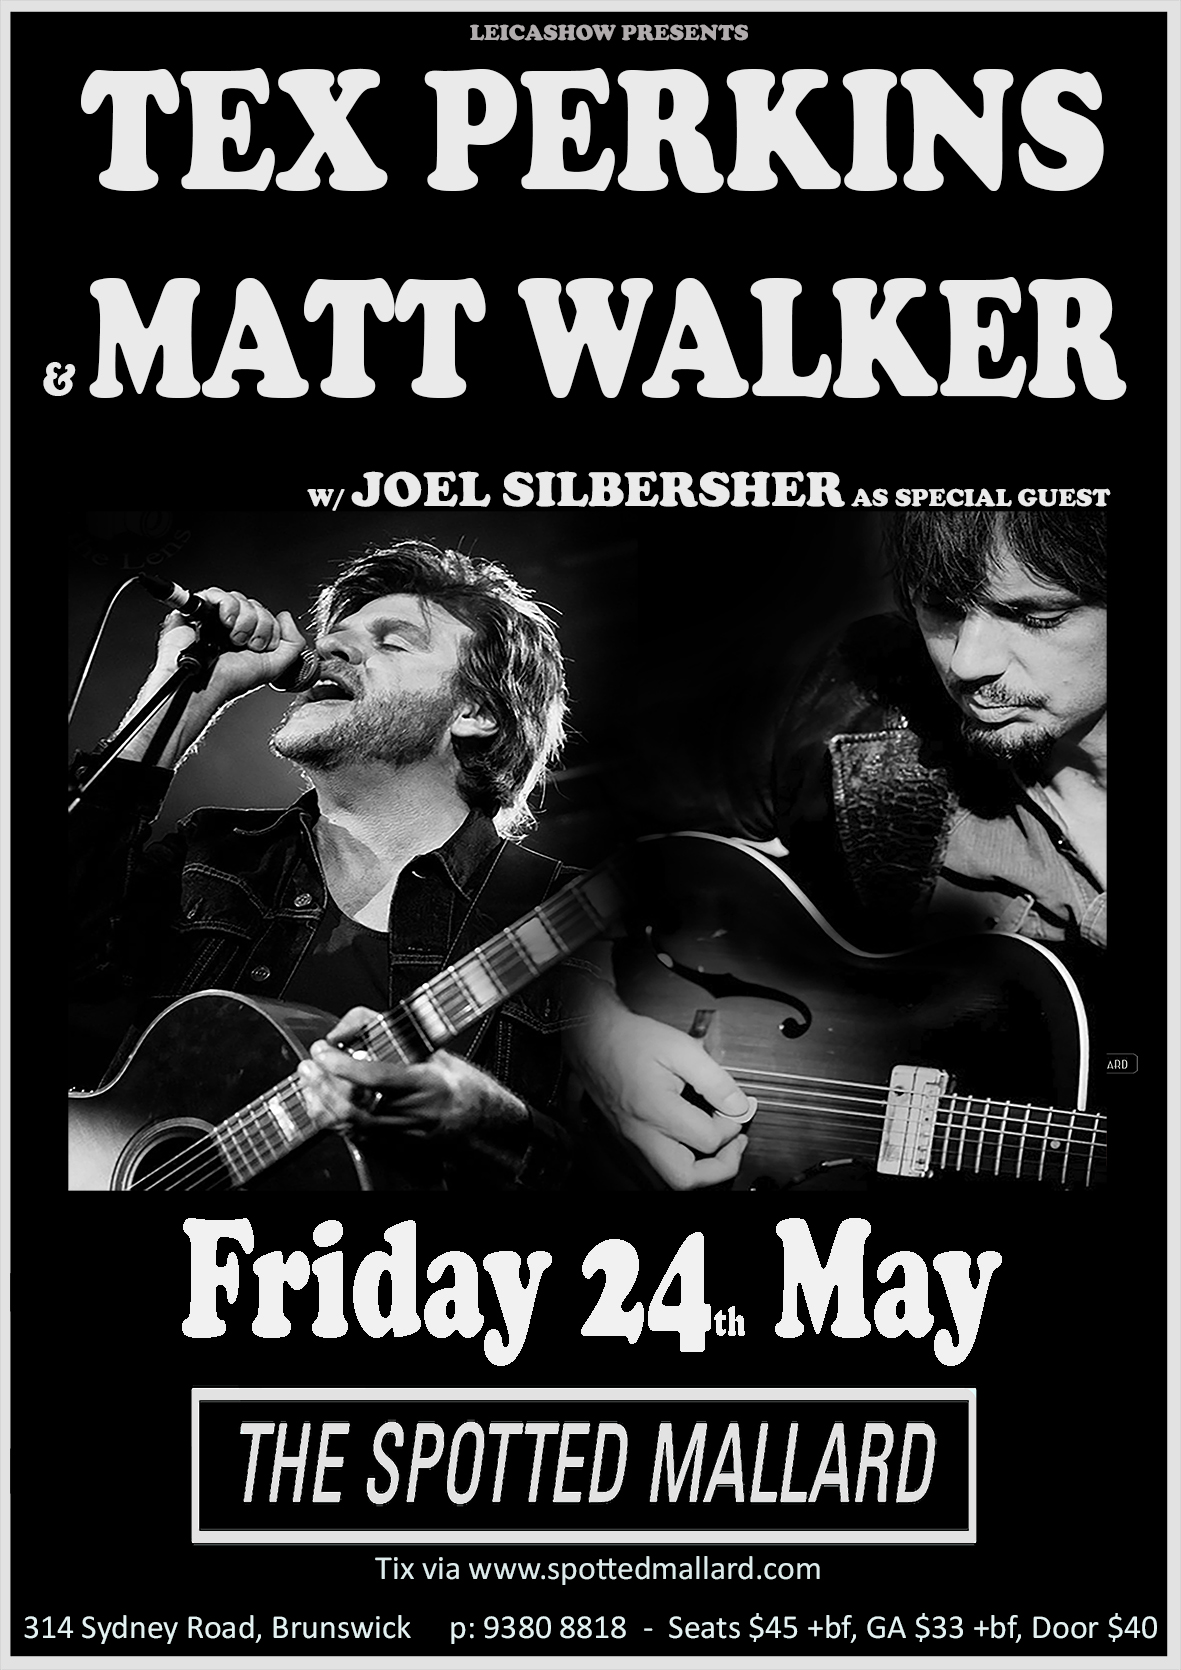 19.05.24 Tex Perkins Matt Walker small